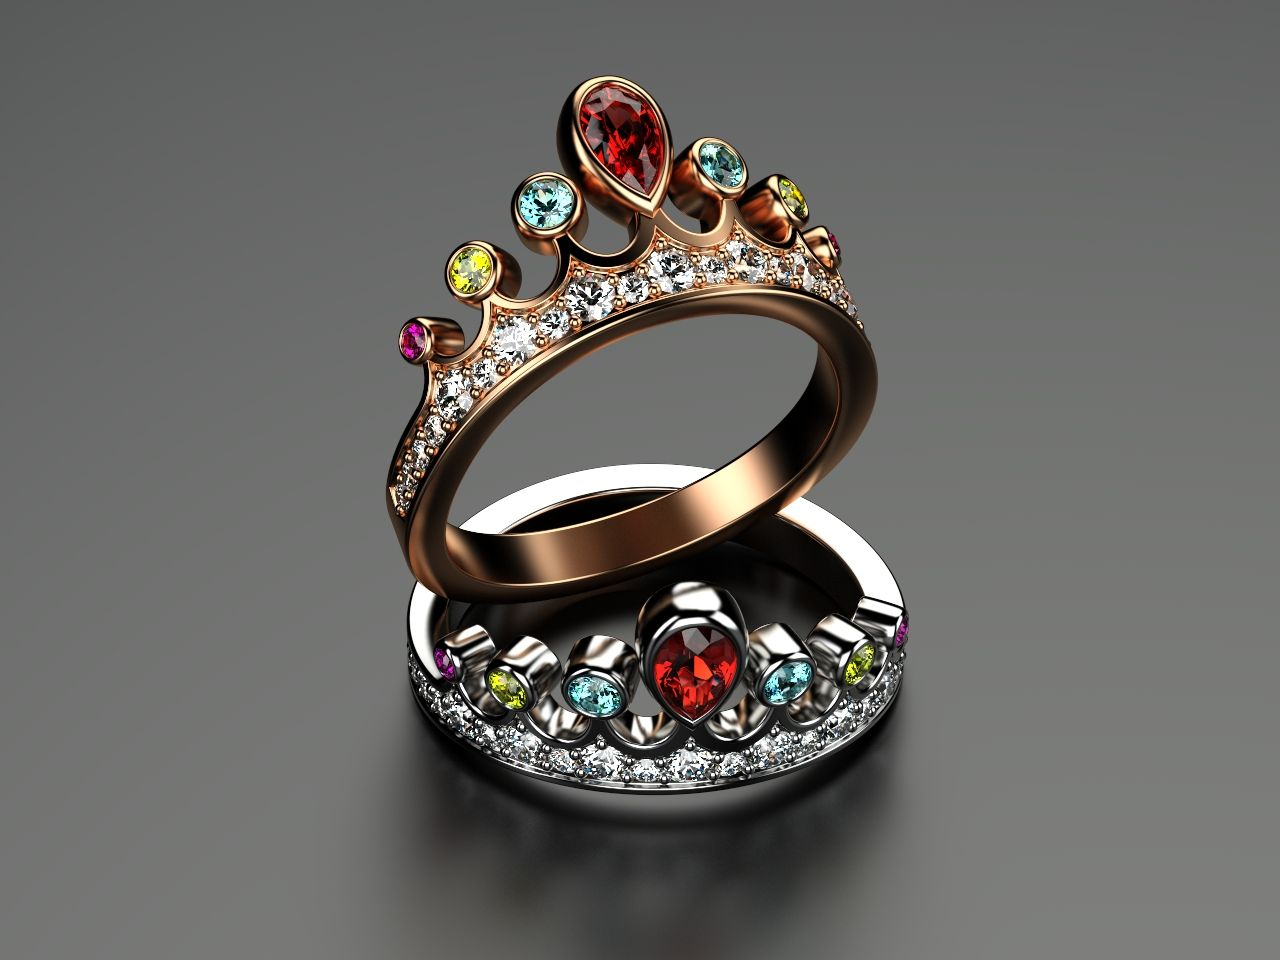 Another Tiara ring, with great color customization. For those, who live a colorful life.